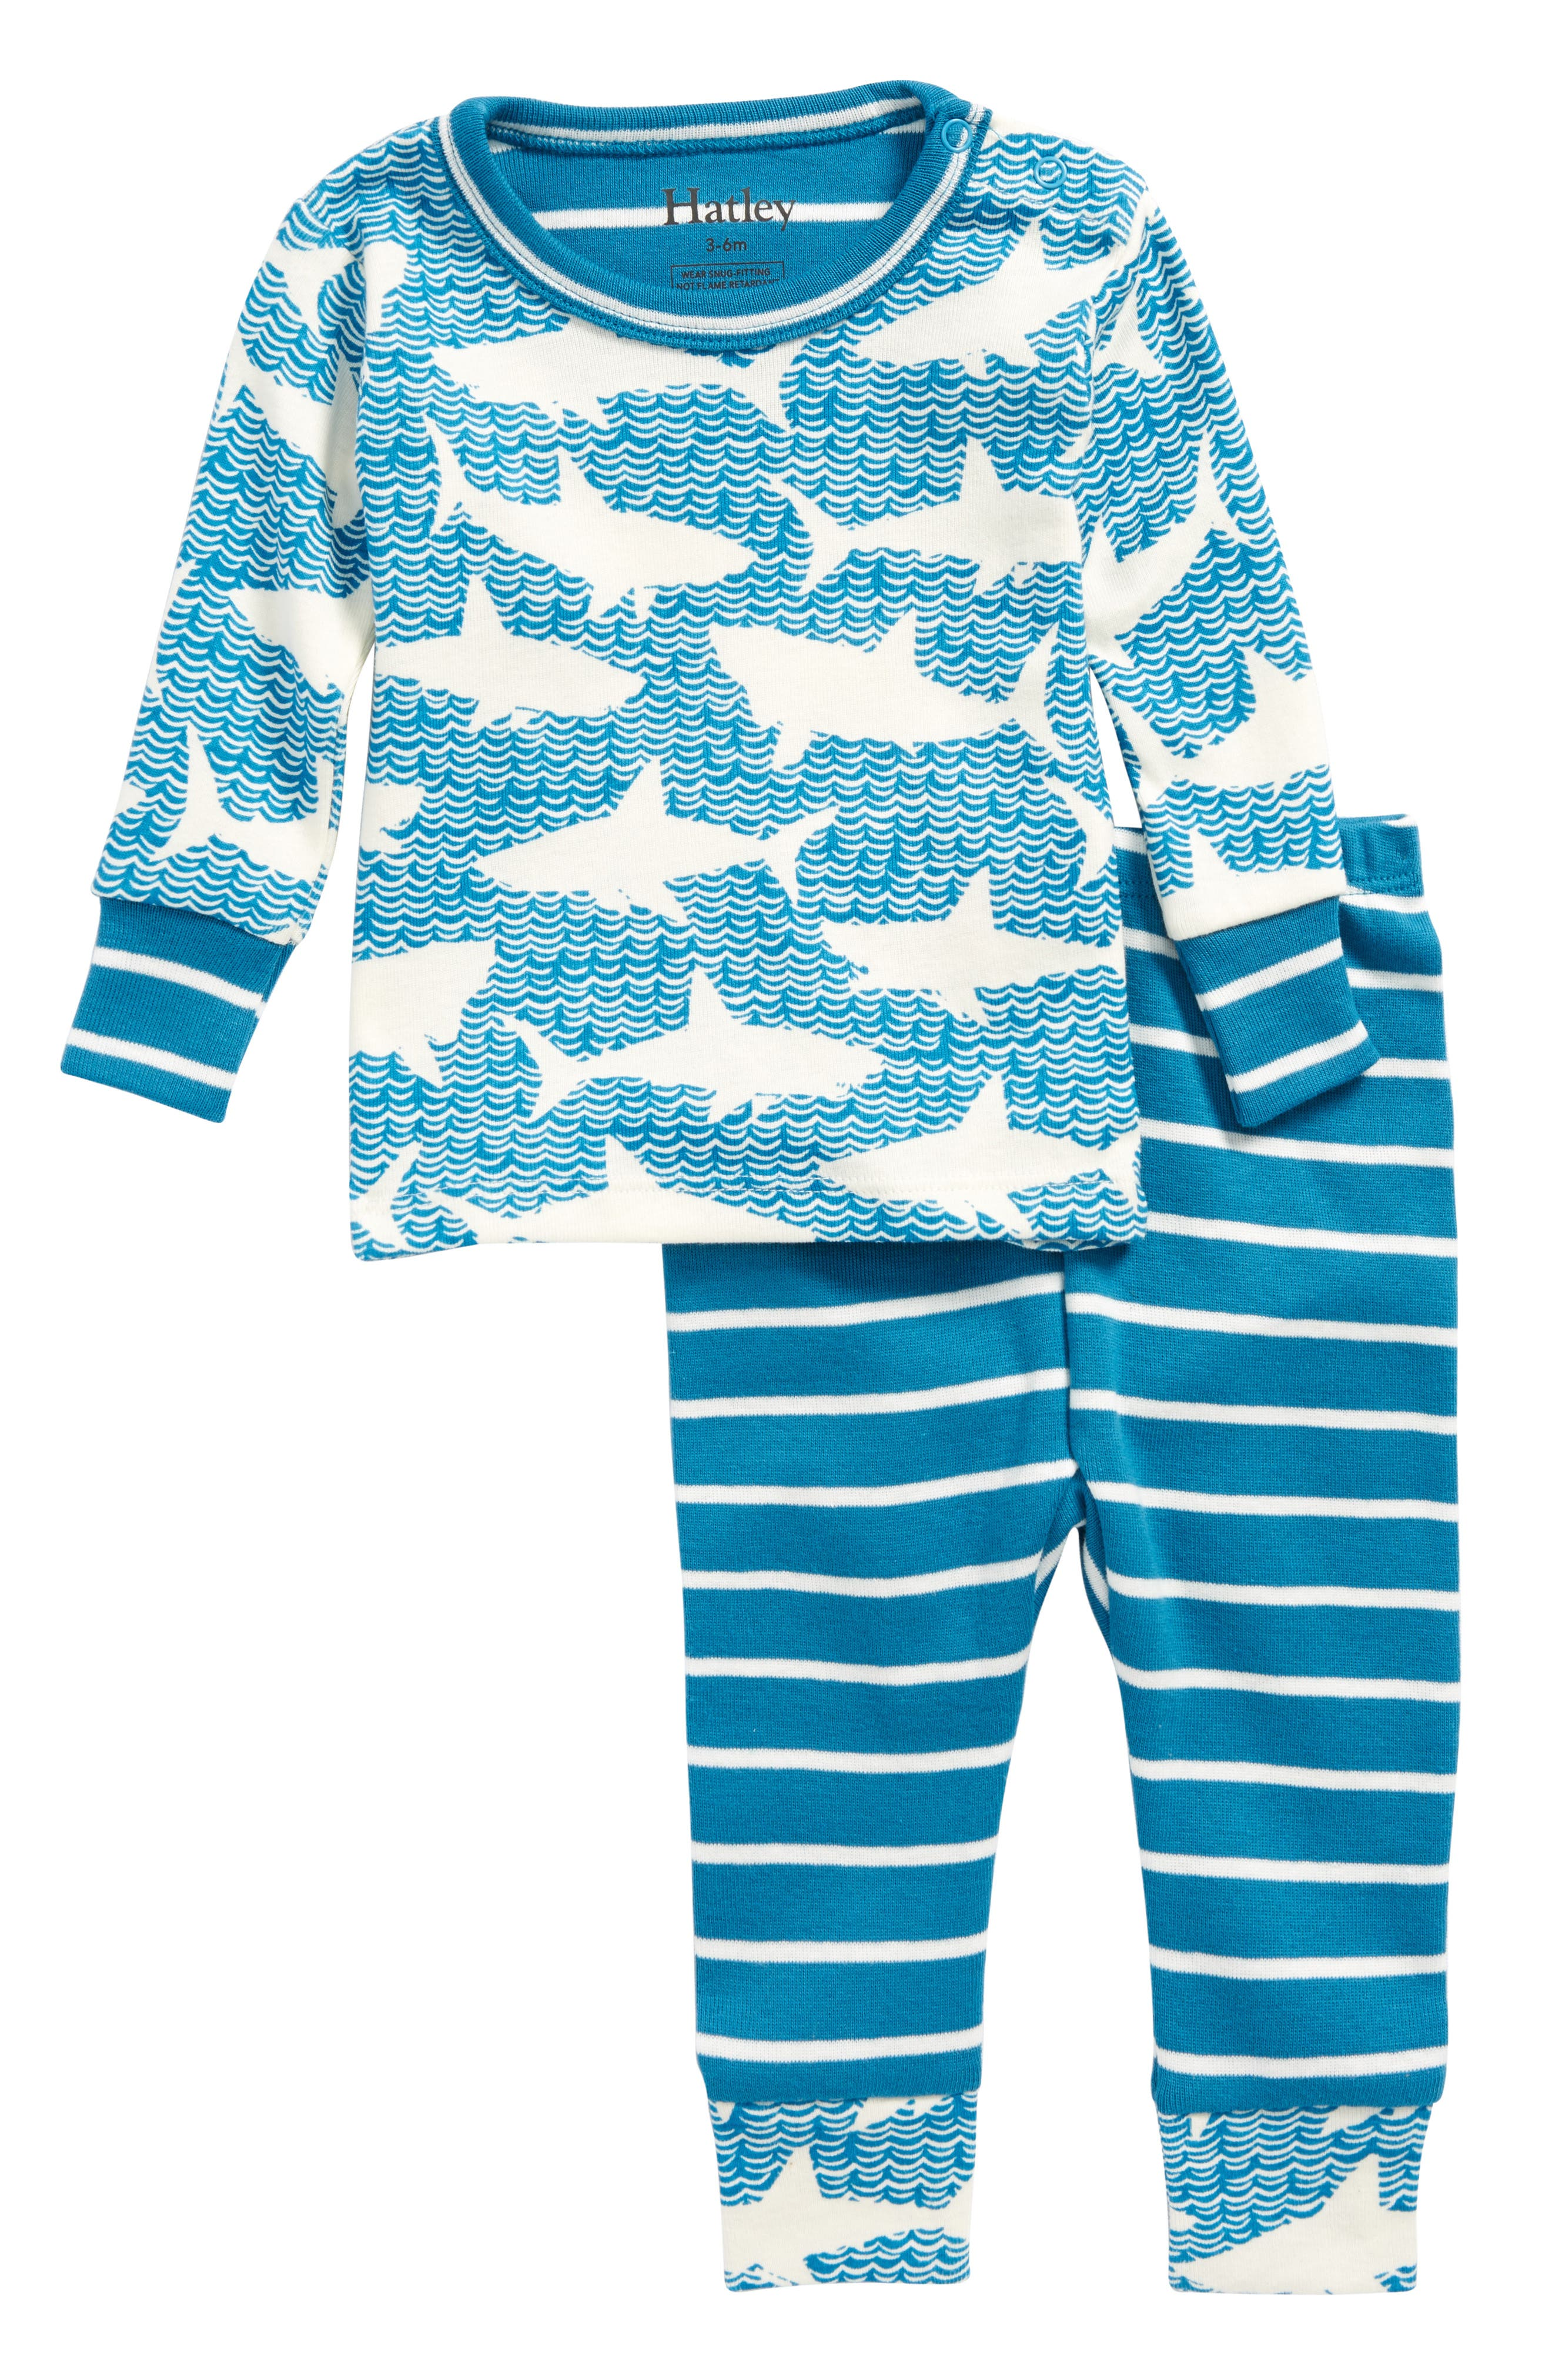 Shark Alley Organic Cotton Fitted Two-Piece Pajamas,                             Main thumbnail 1, color,